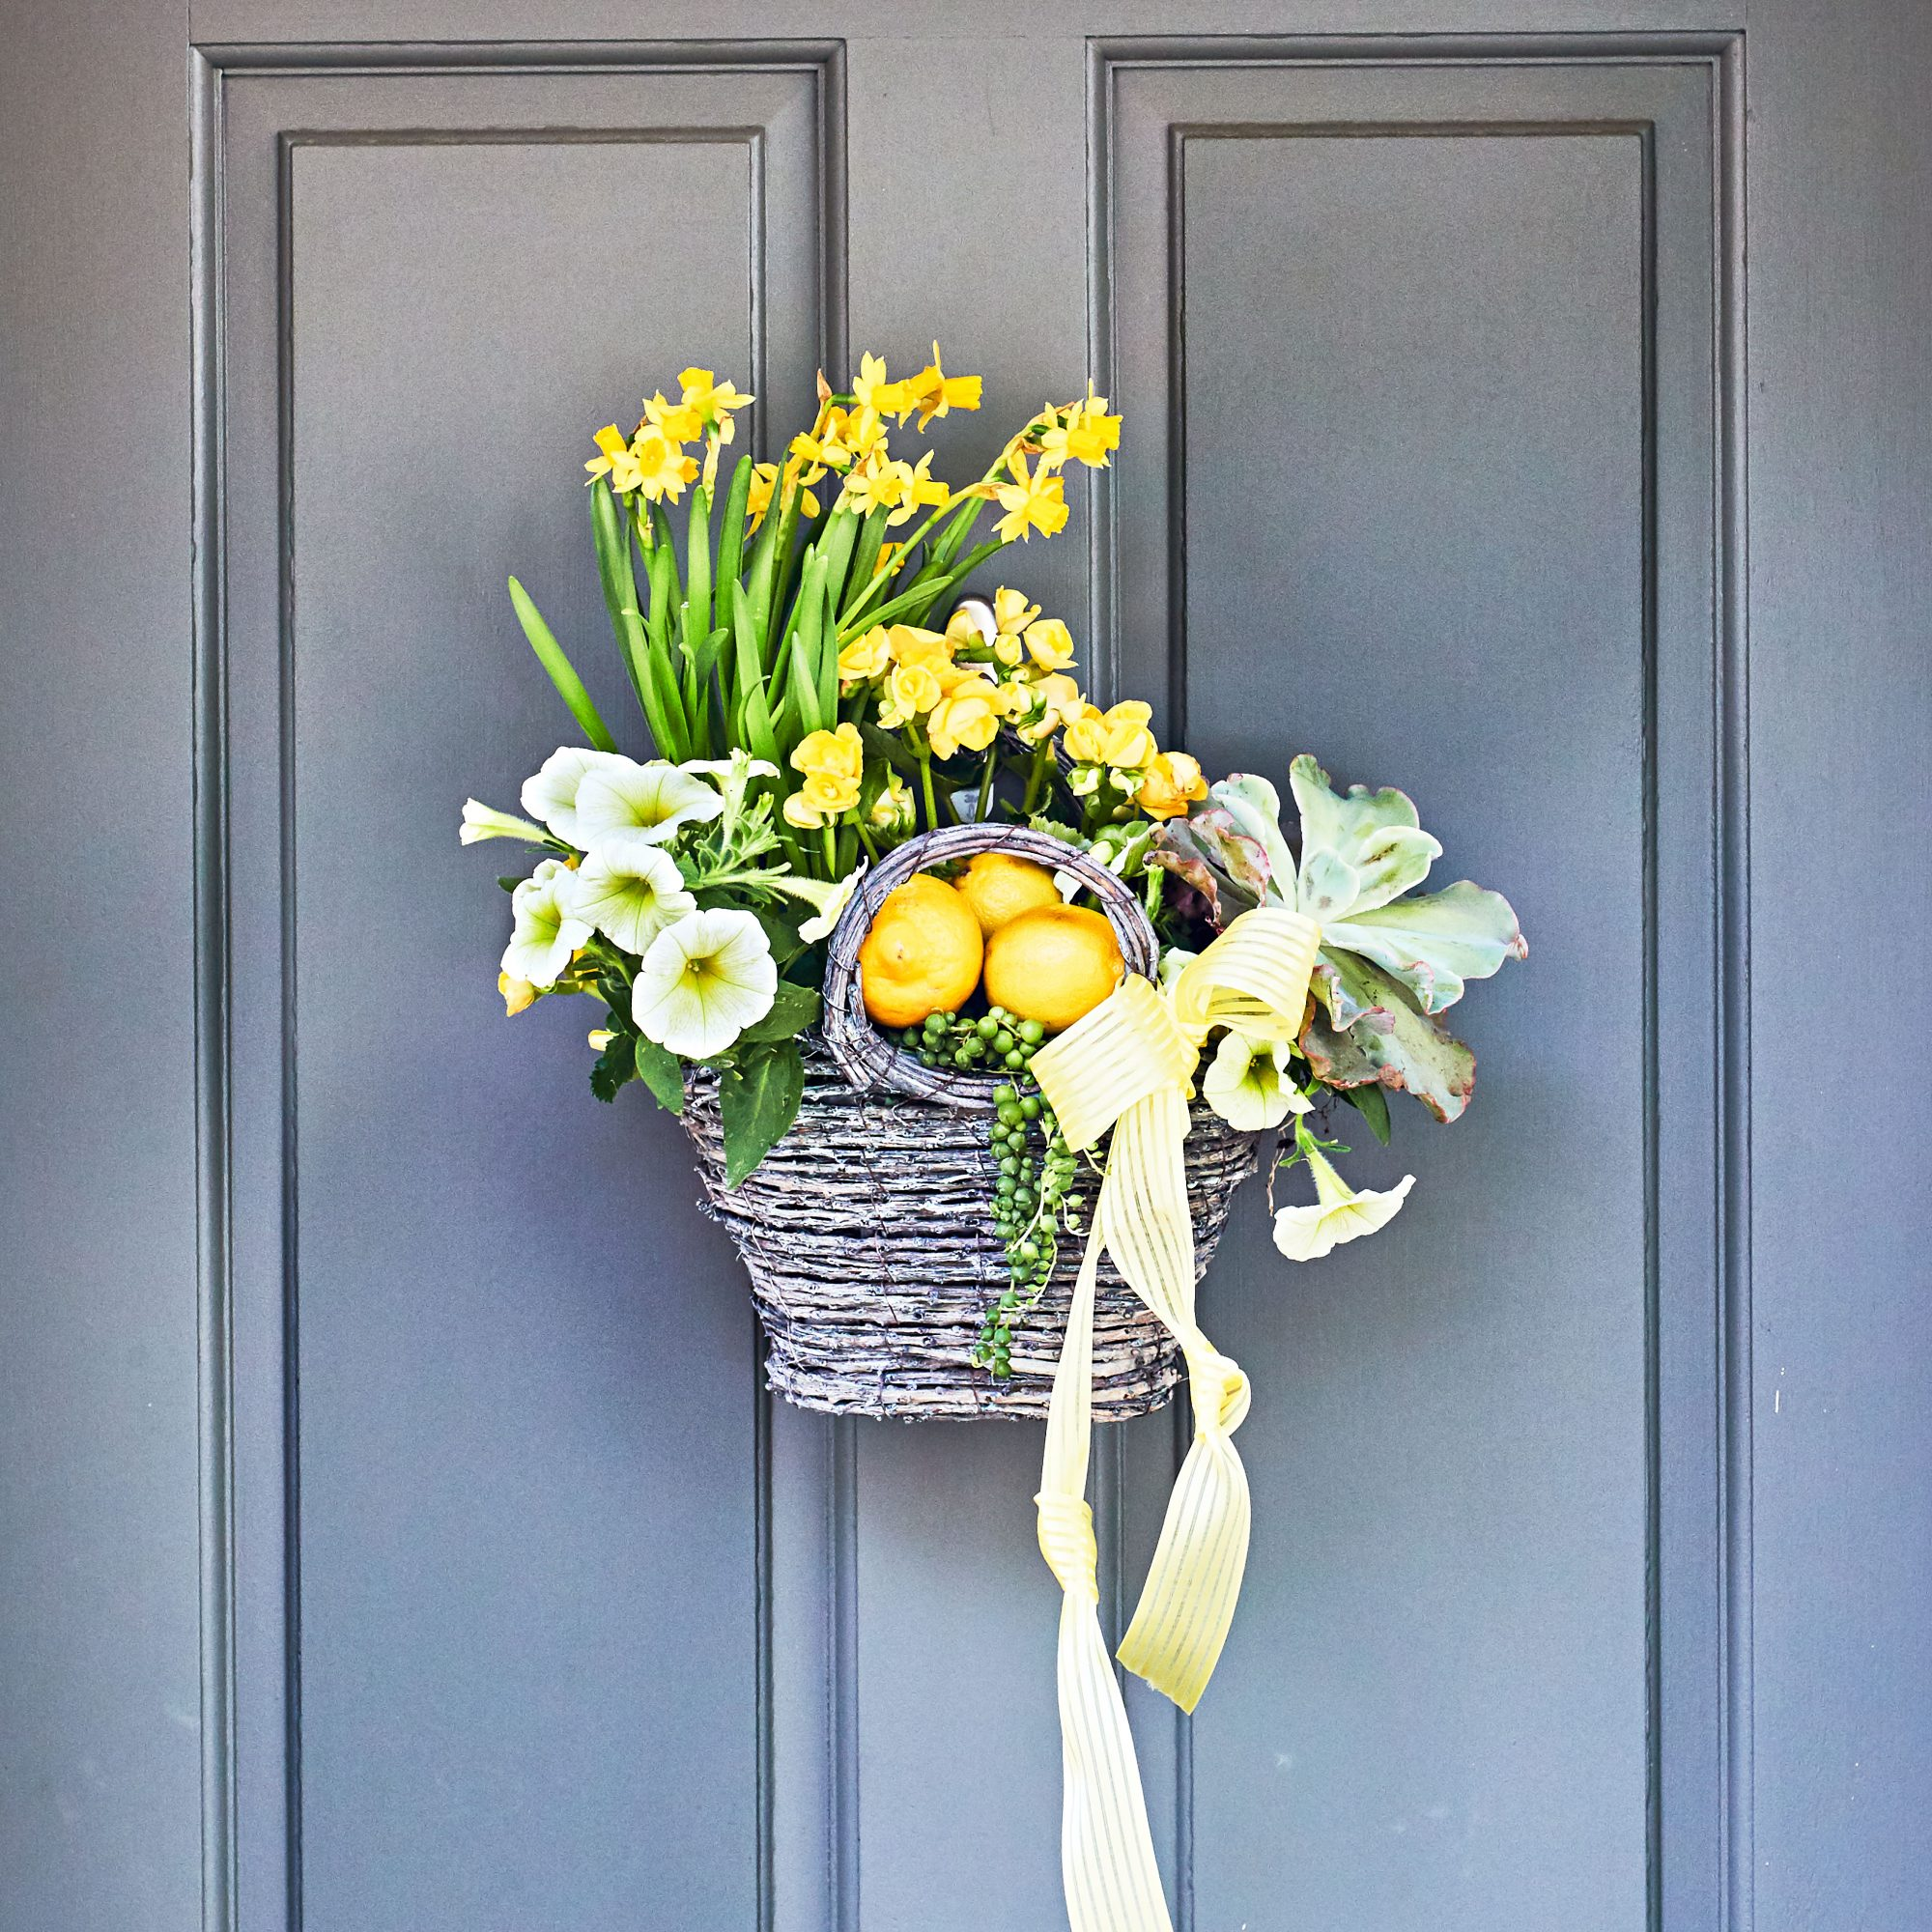 Hanging basket on front door with daffodils, violas, and succulents